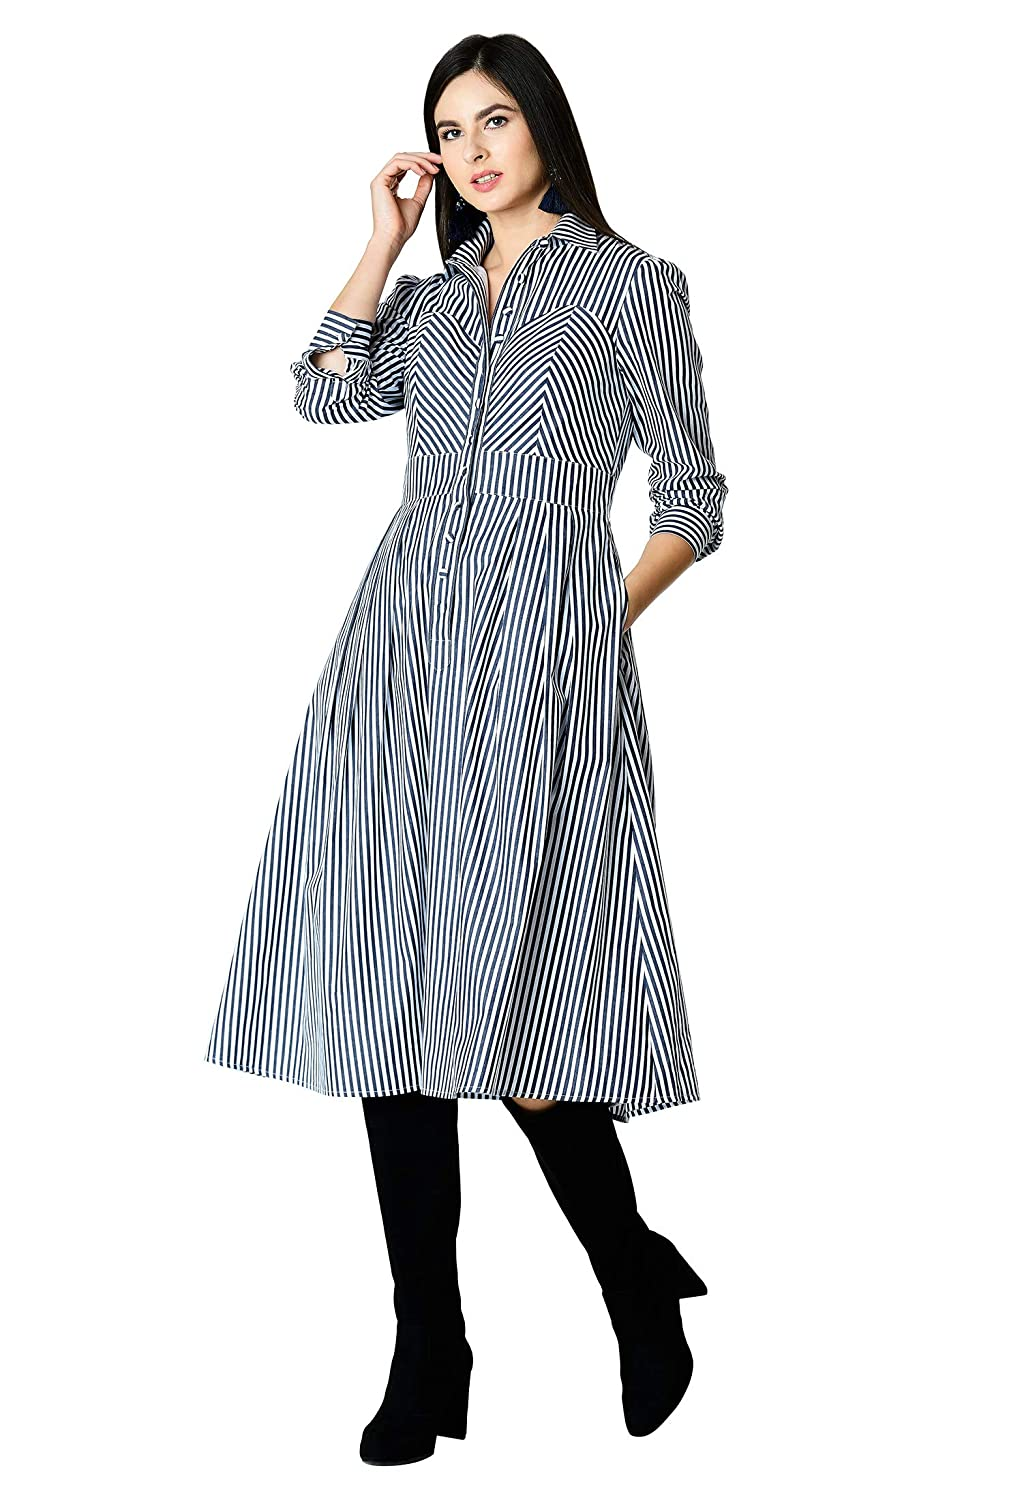 Eshakti Womens Cotton Poplin Stripe Shirtdress At Amazon Womens